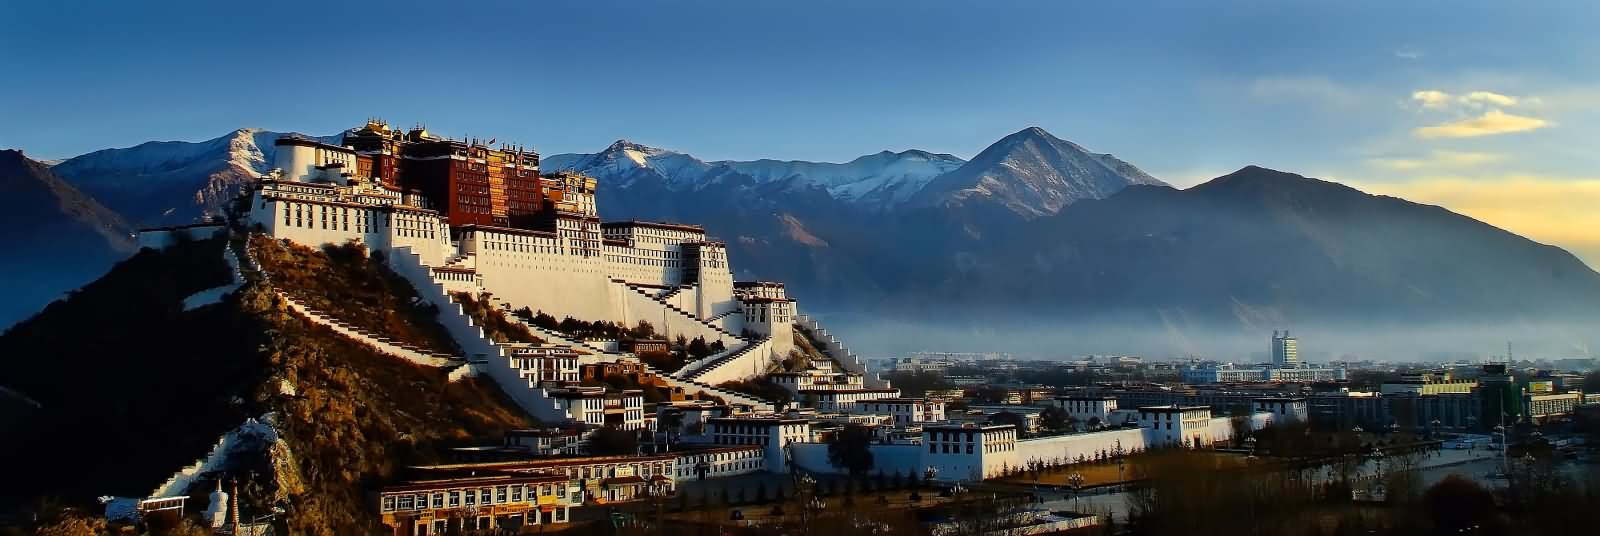 40 Most Adorable Pictures And Photos Of Potala Palace In